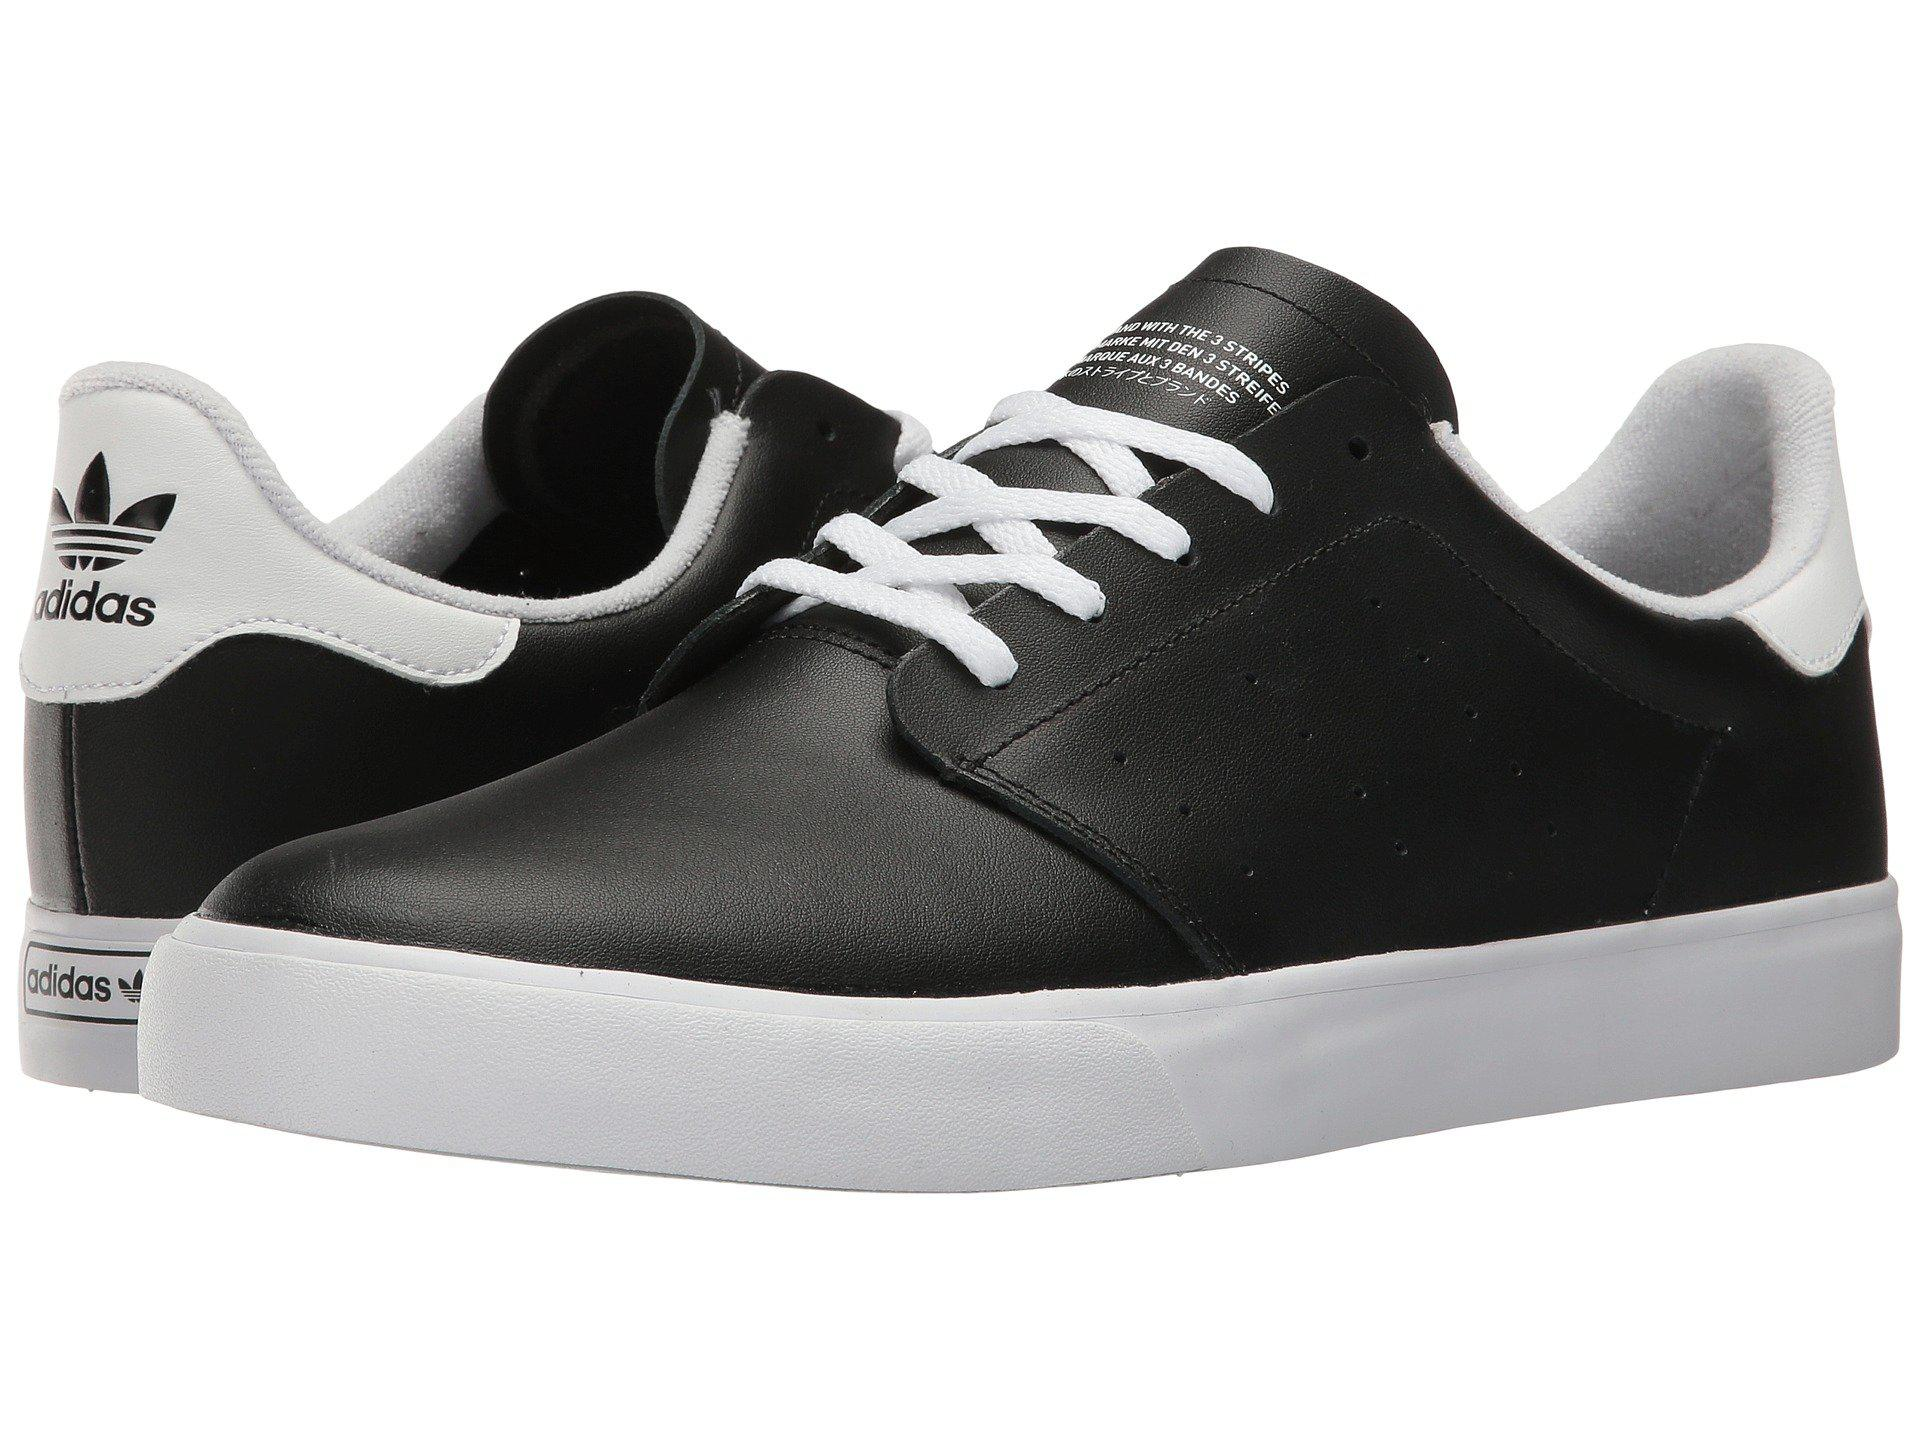 227c8a63a33 Lyst - adidas Originals Seeley Court in Black for Men